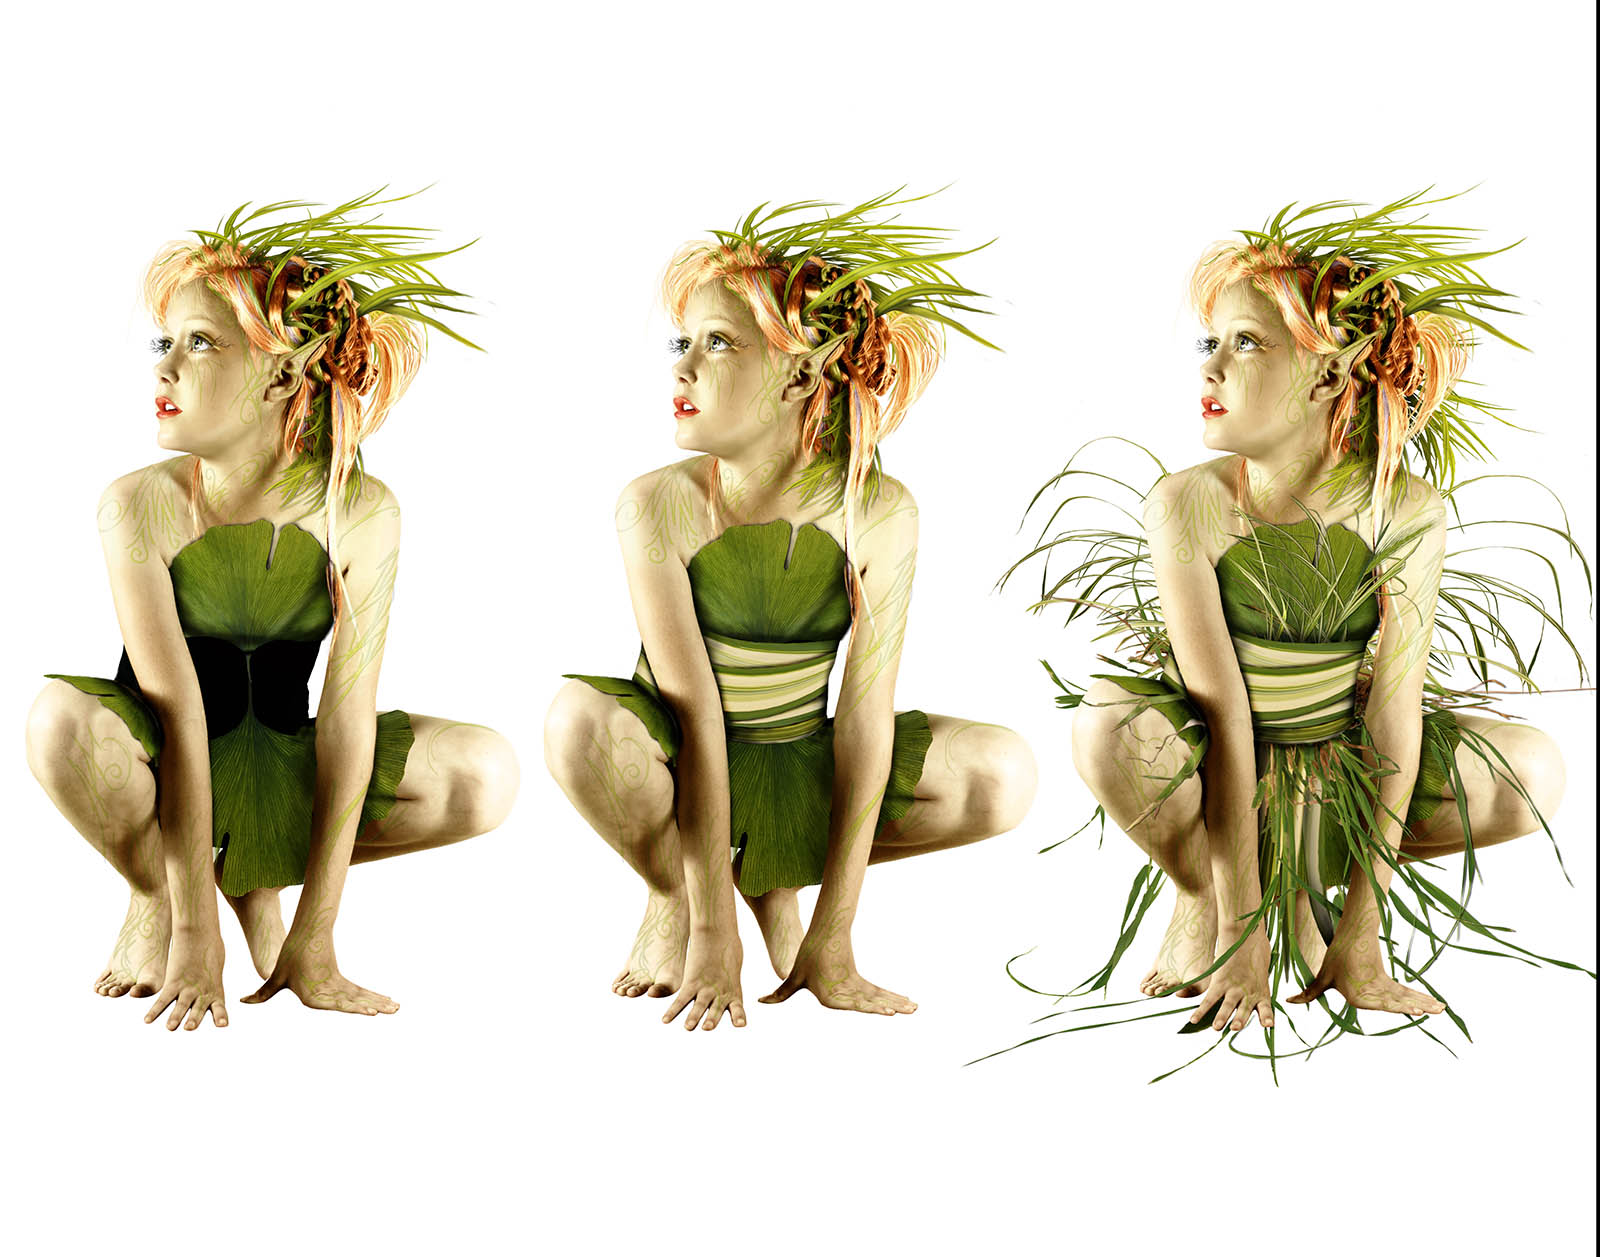 Adding more elements, I feel pretty satisfied with how she looks, so far. But, I am a long way from completion. All the grass and leaves in her costume were photographed from my own yard and carefully cut out in Photoshop. The body art was digitally painted. -